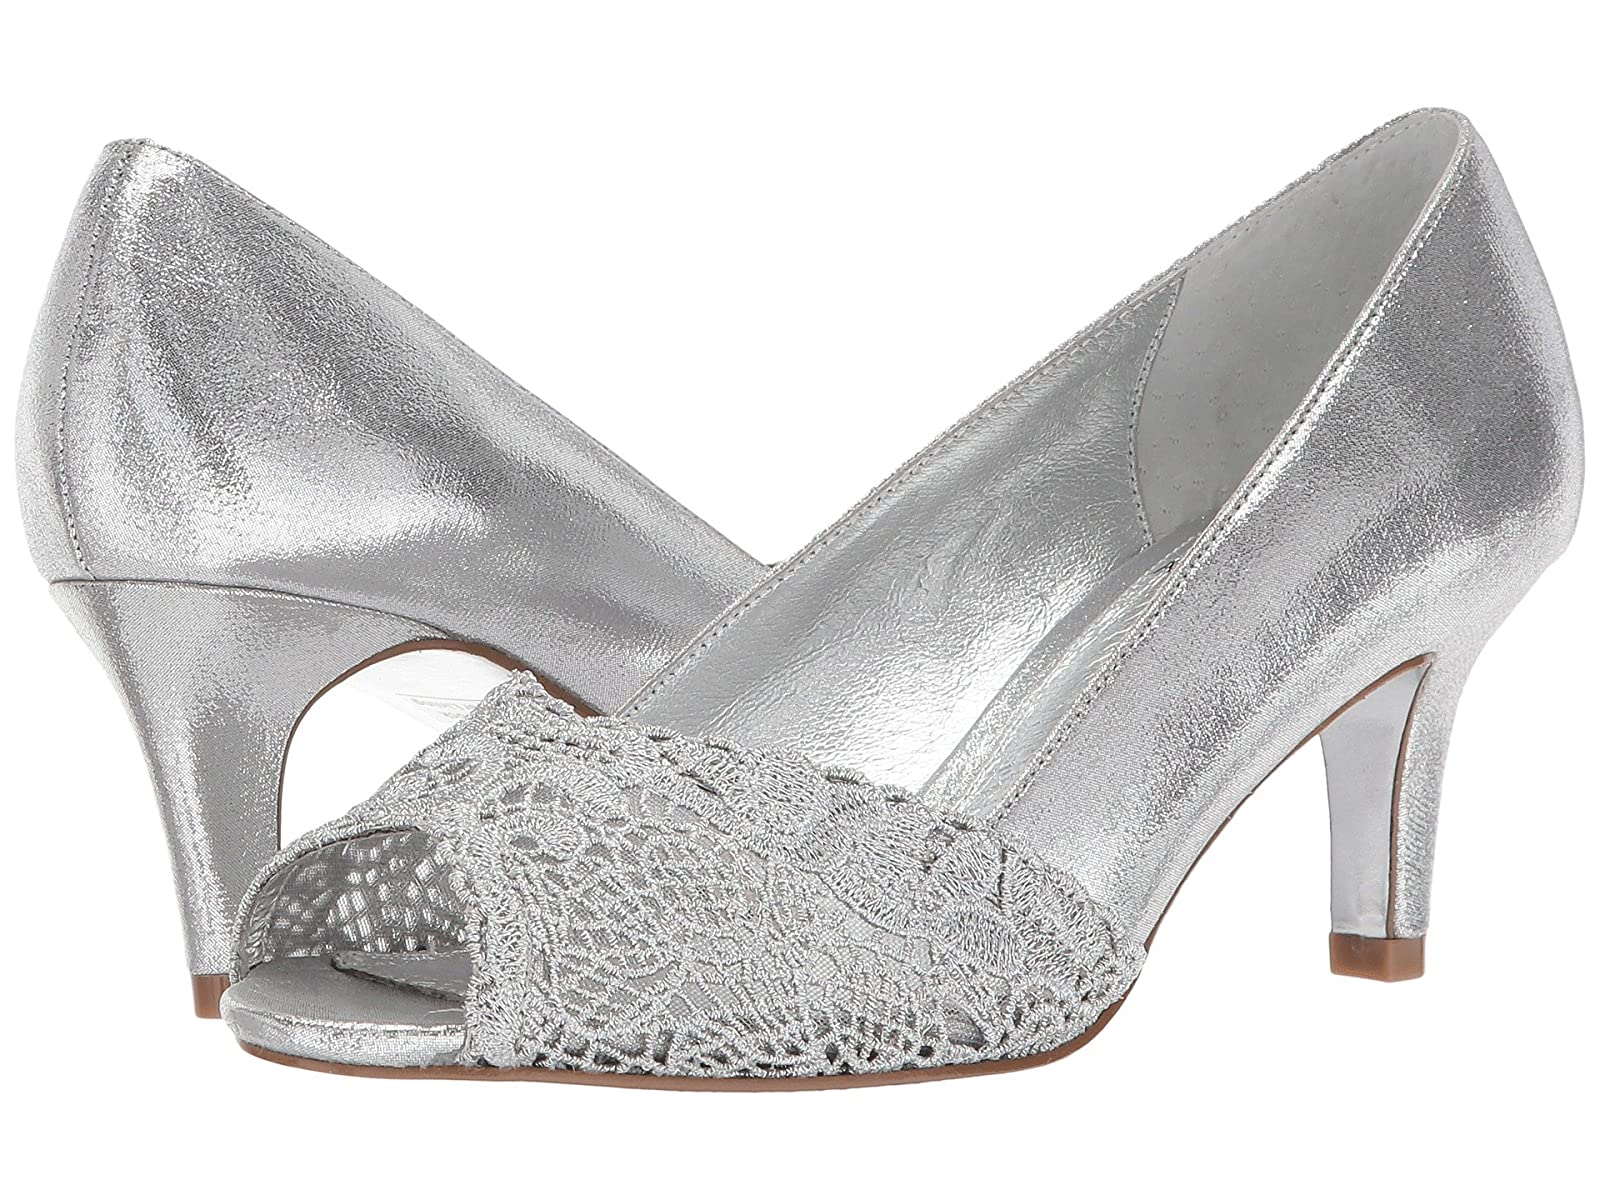 Adrianna Papell JudeCheap and distinctive eye-catching shoes